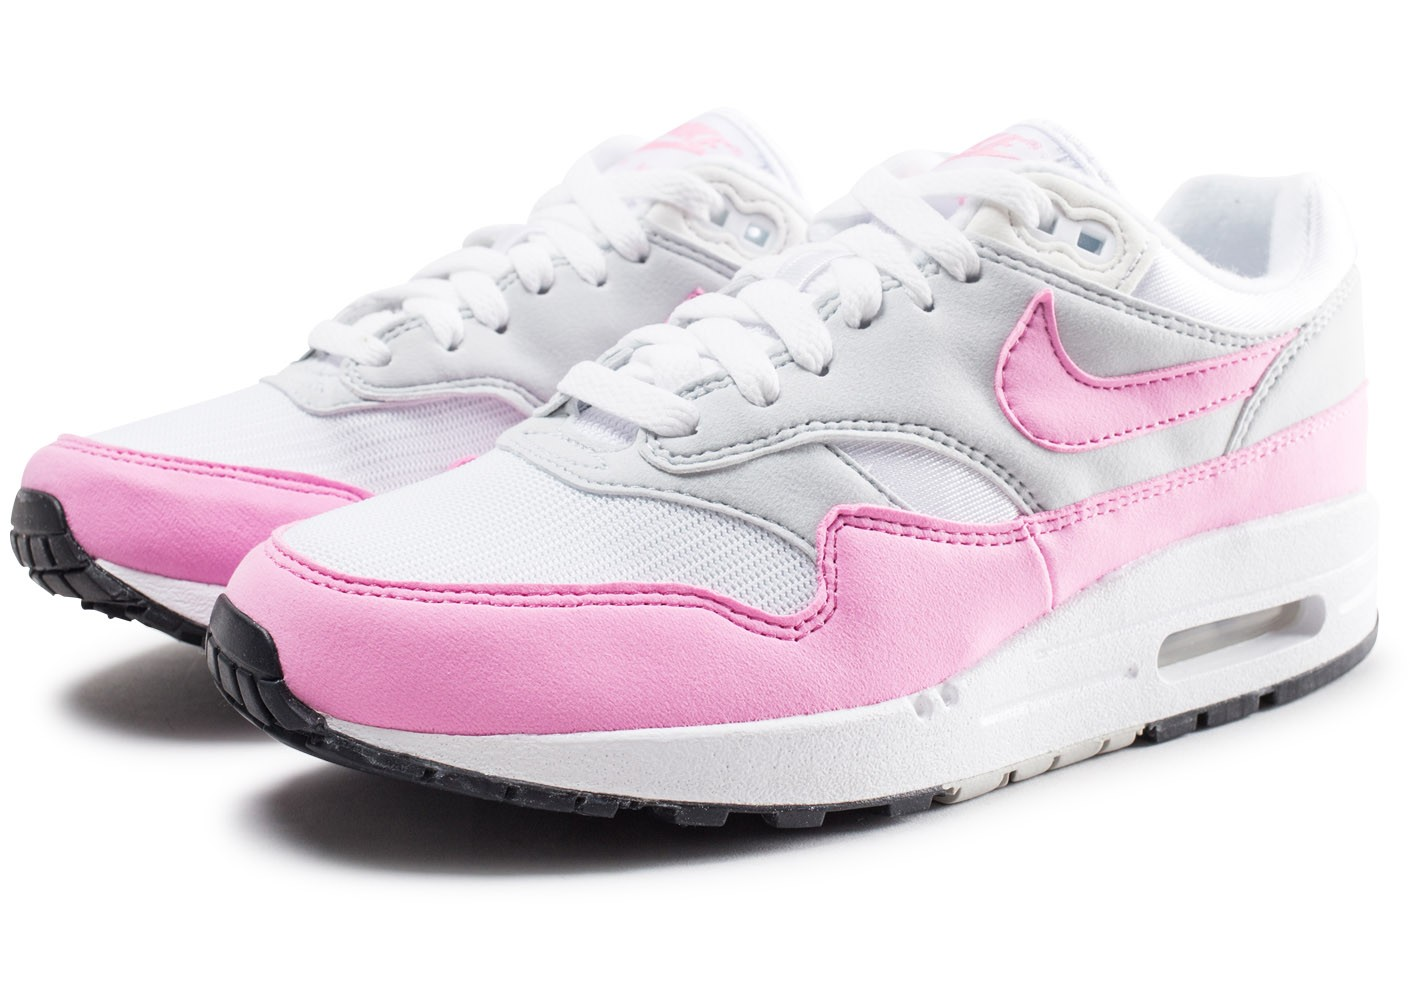 professional sale 50% price great prices Nike Air Max Essential 1 blanche et rose femme - Chaussures ...